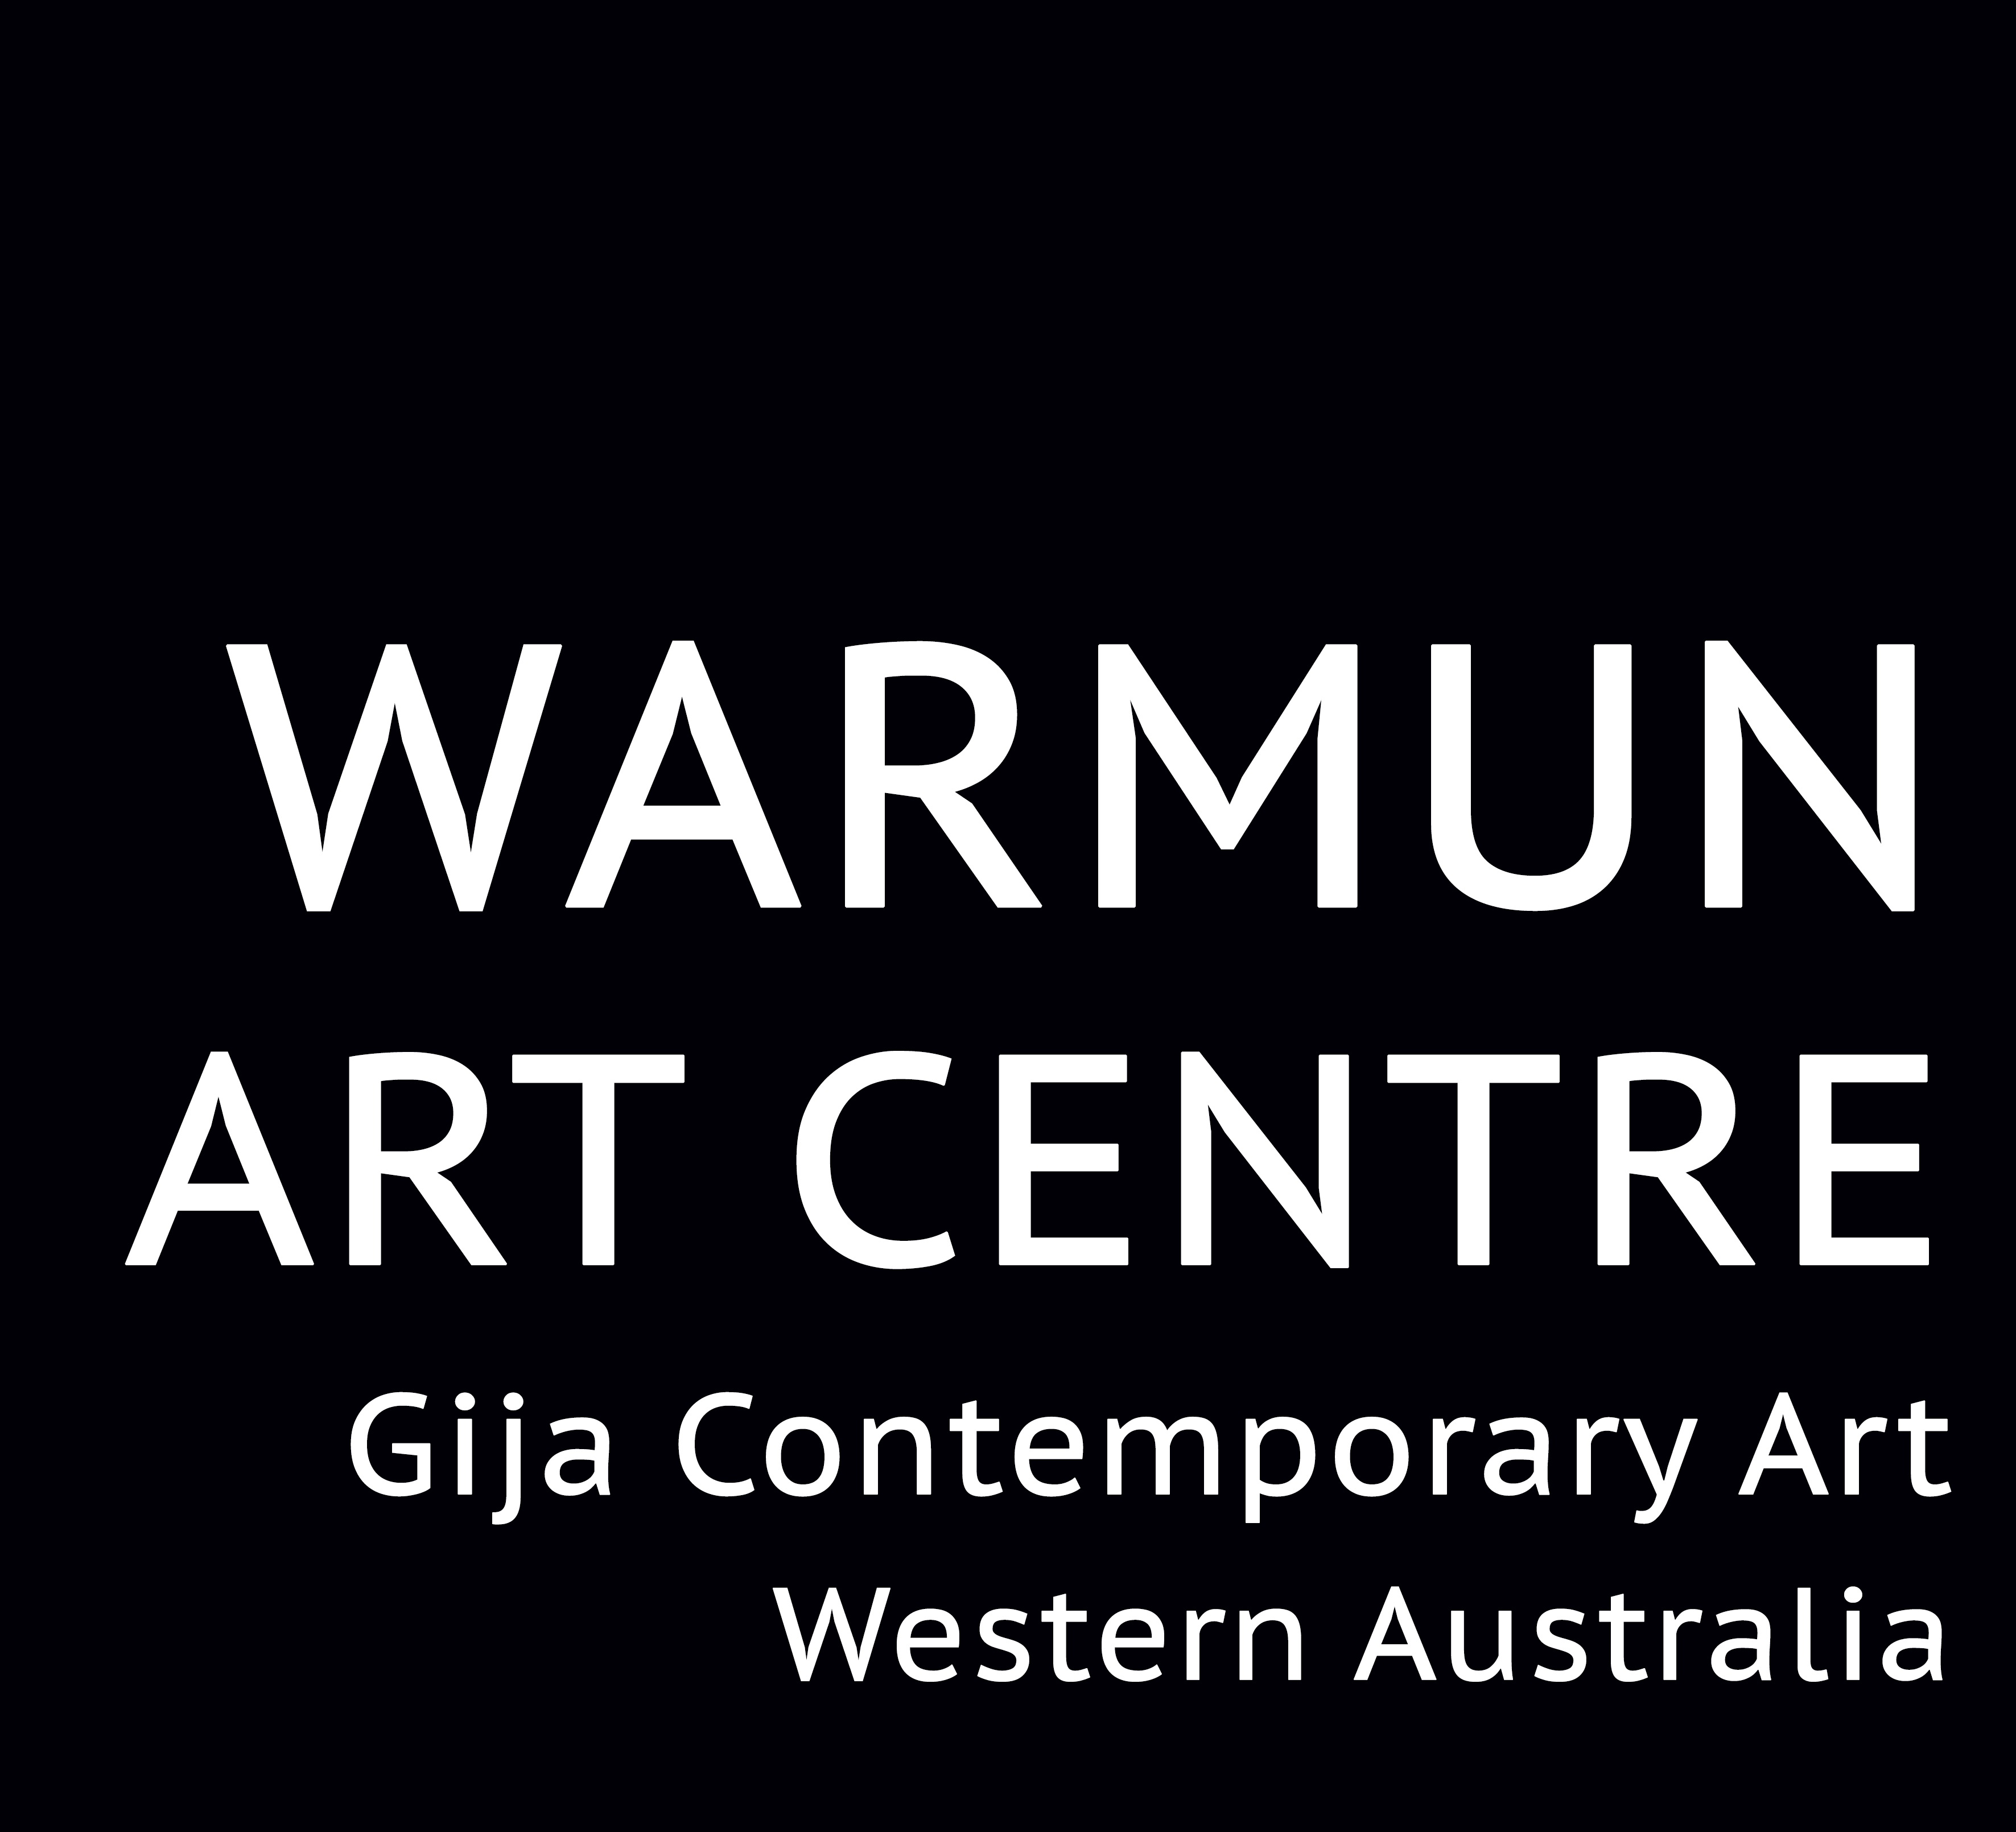 LOGO-Warmun-Art-Centre-Large-300dpi